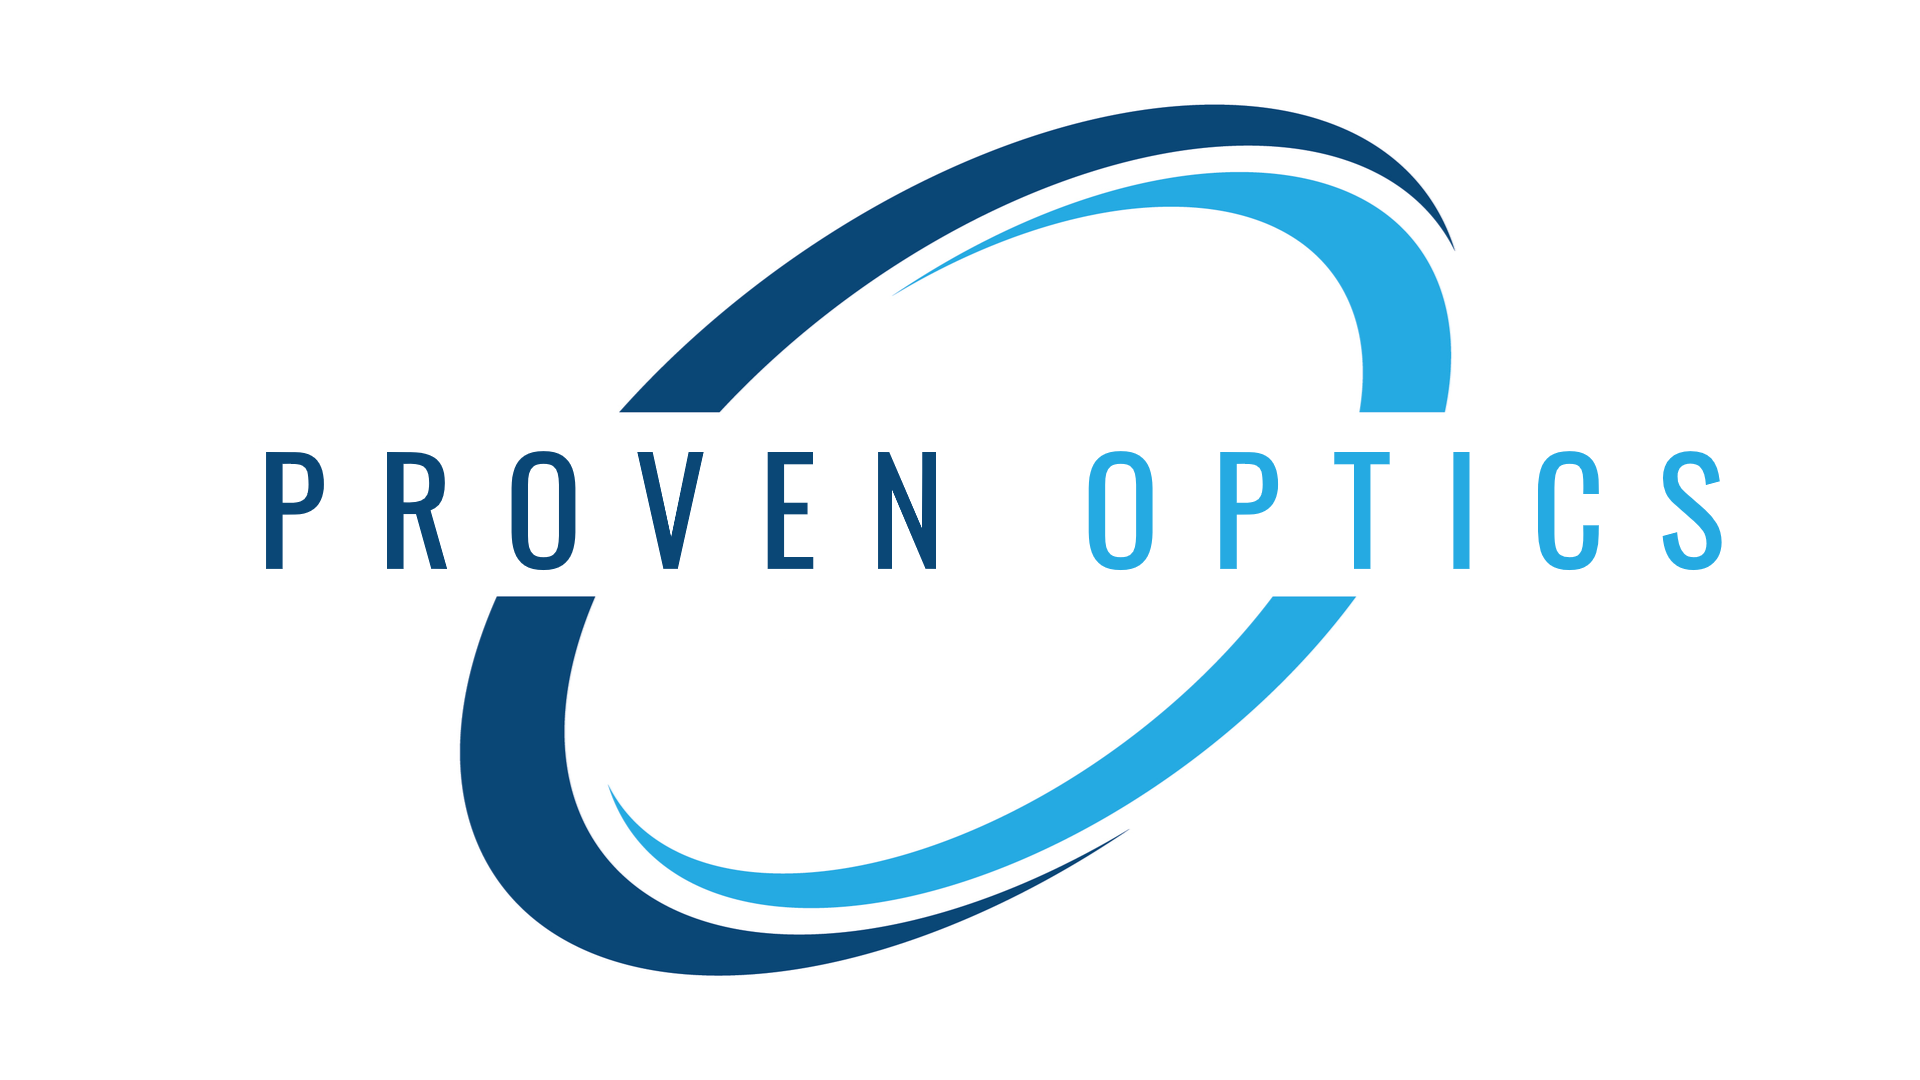 Proven Optics Financial Management Application Suite on Carahsoft's SEWP V and NASPO Contracts